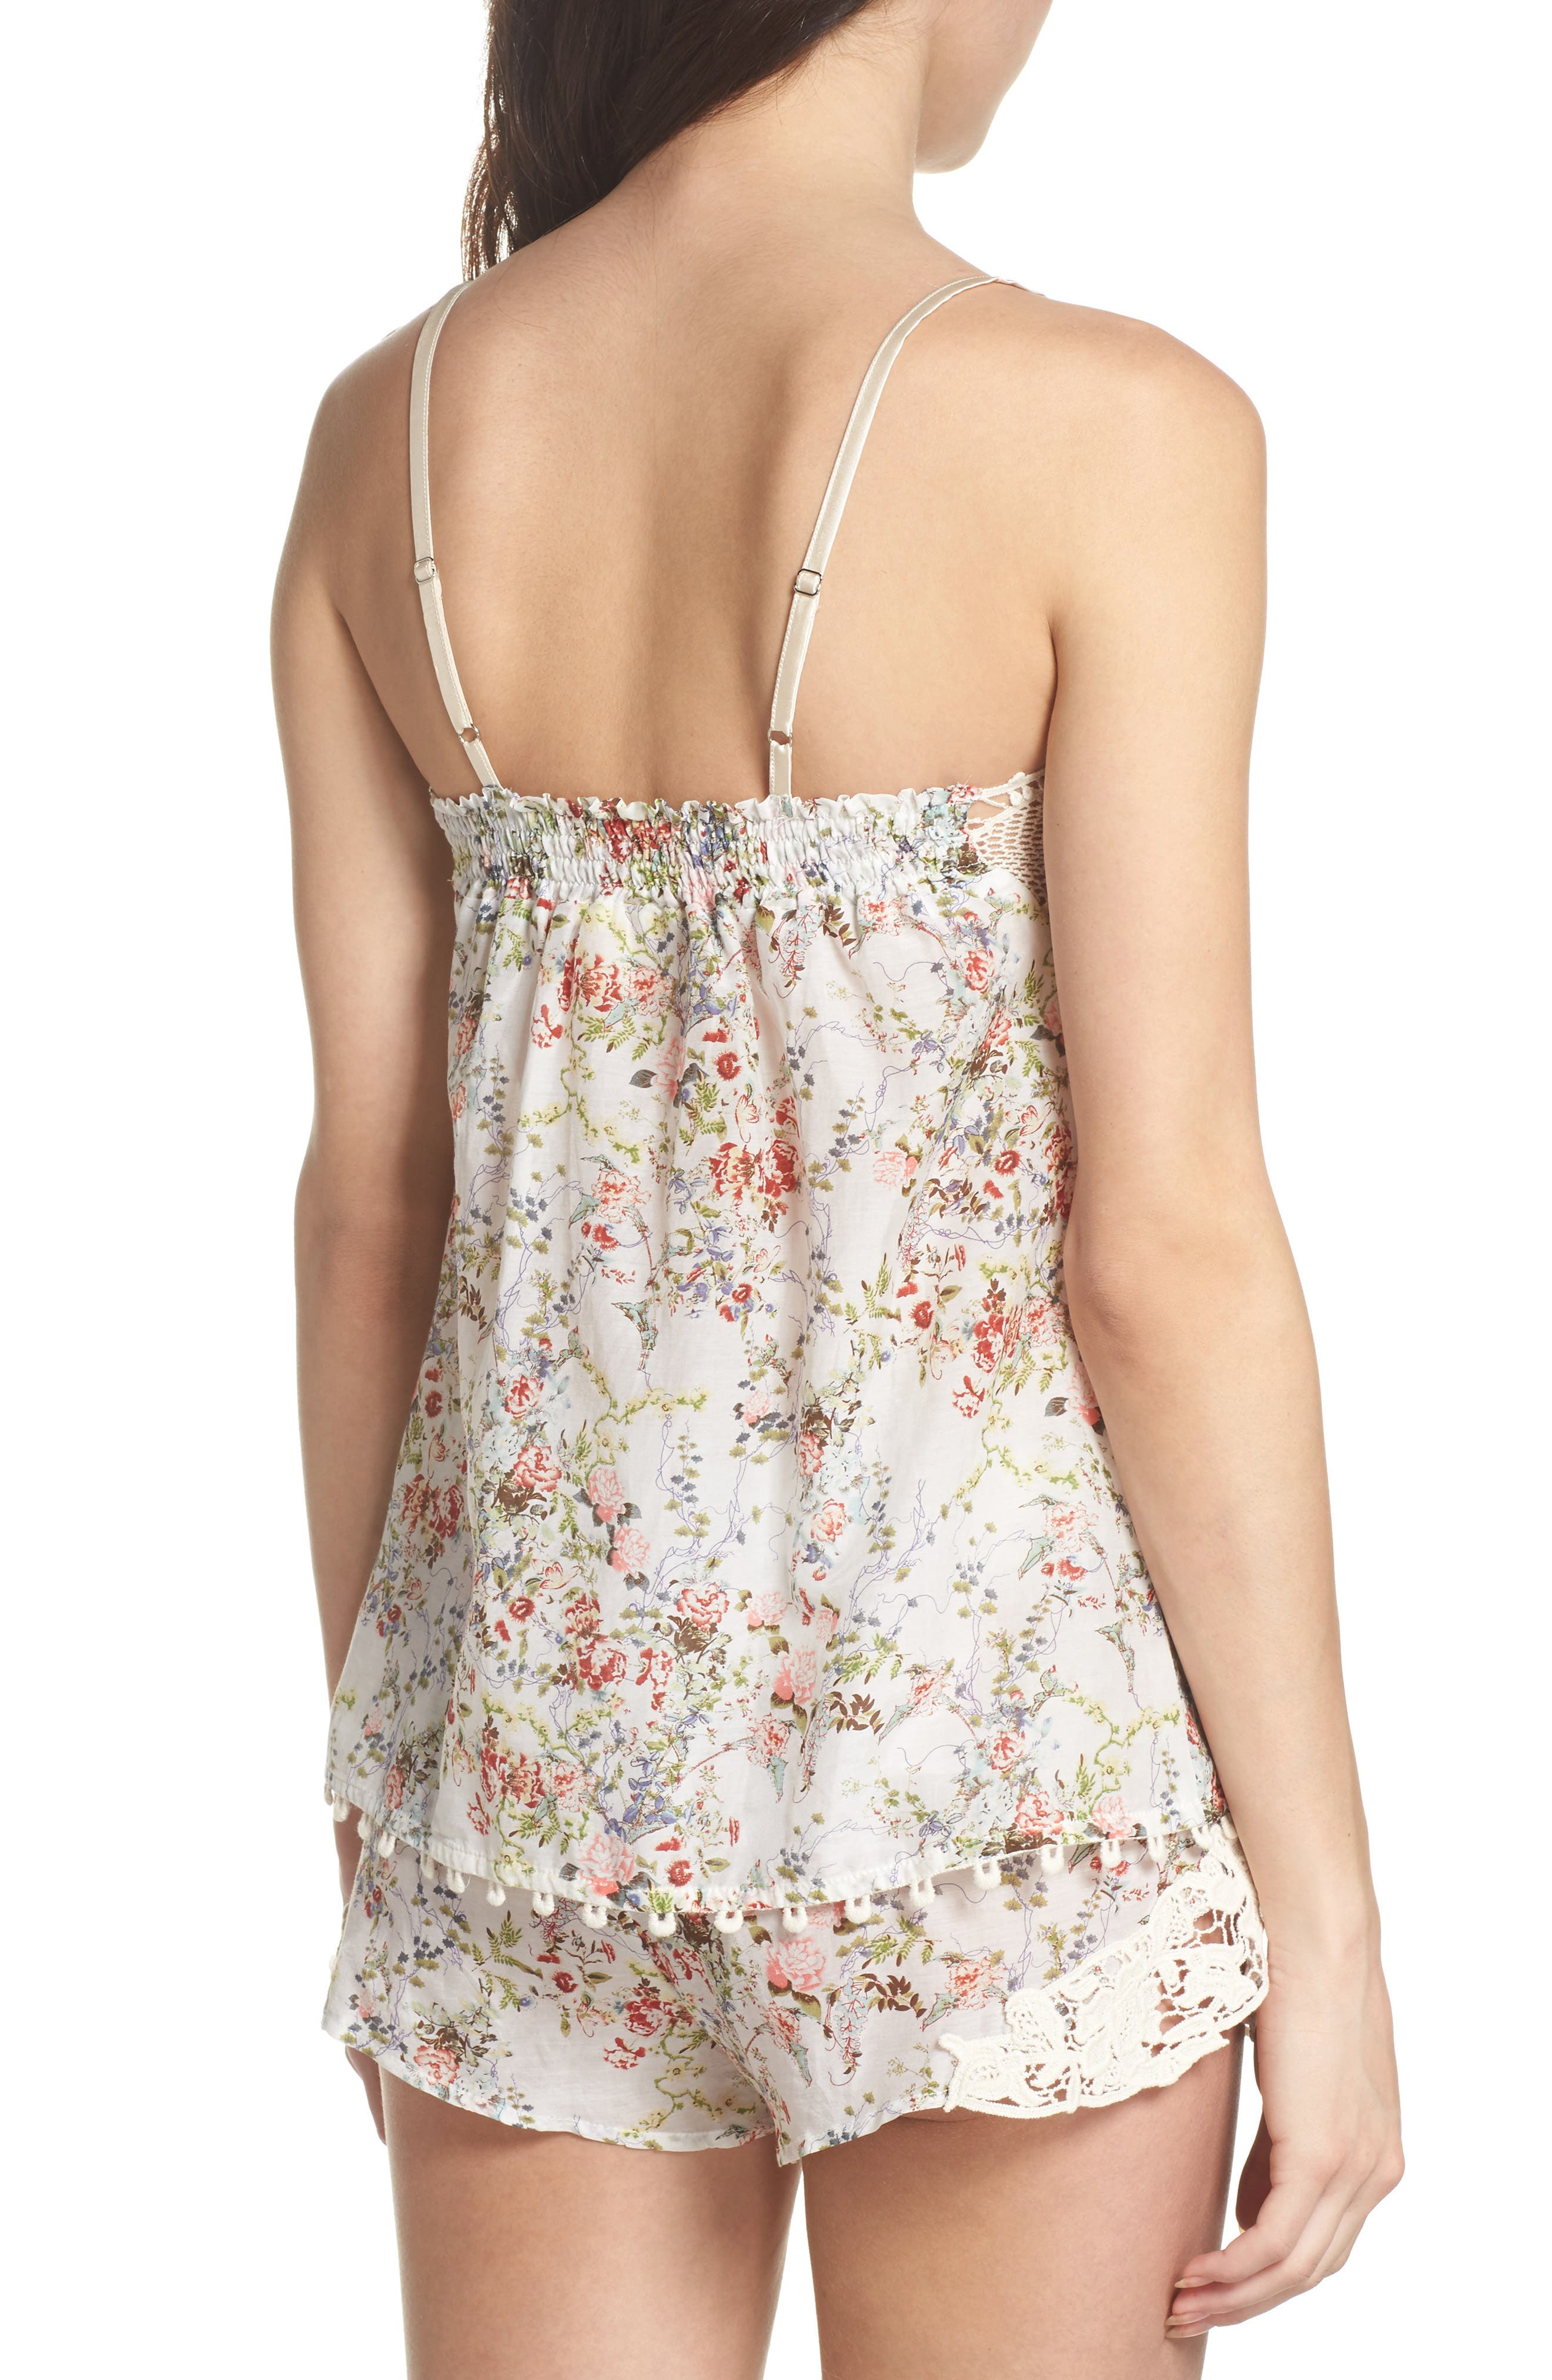 Yolly Camisole,                             Alternate thumbnail 2, color,                             IVORY FLORAL